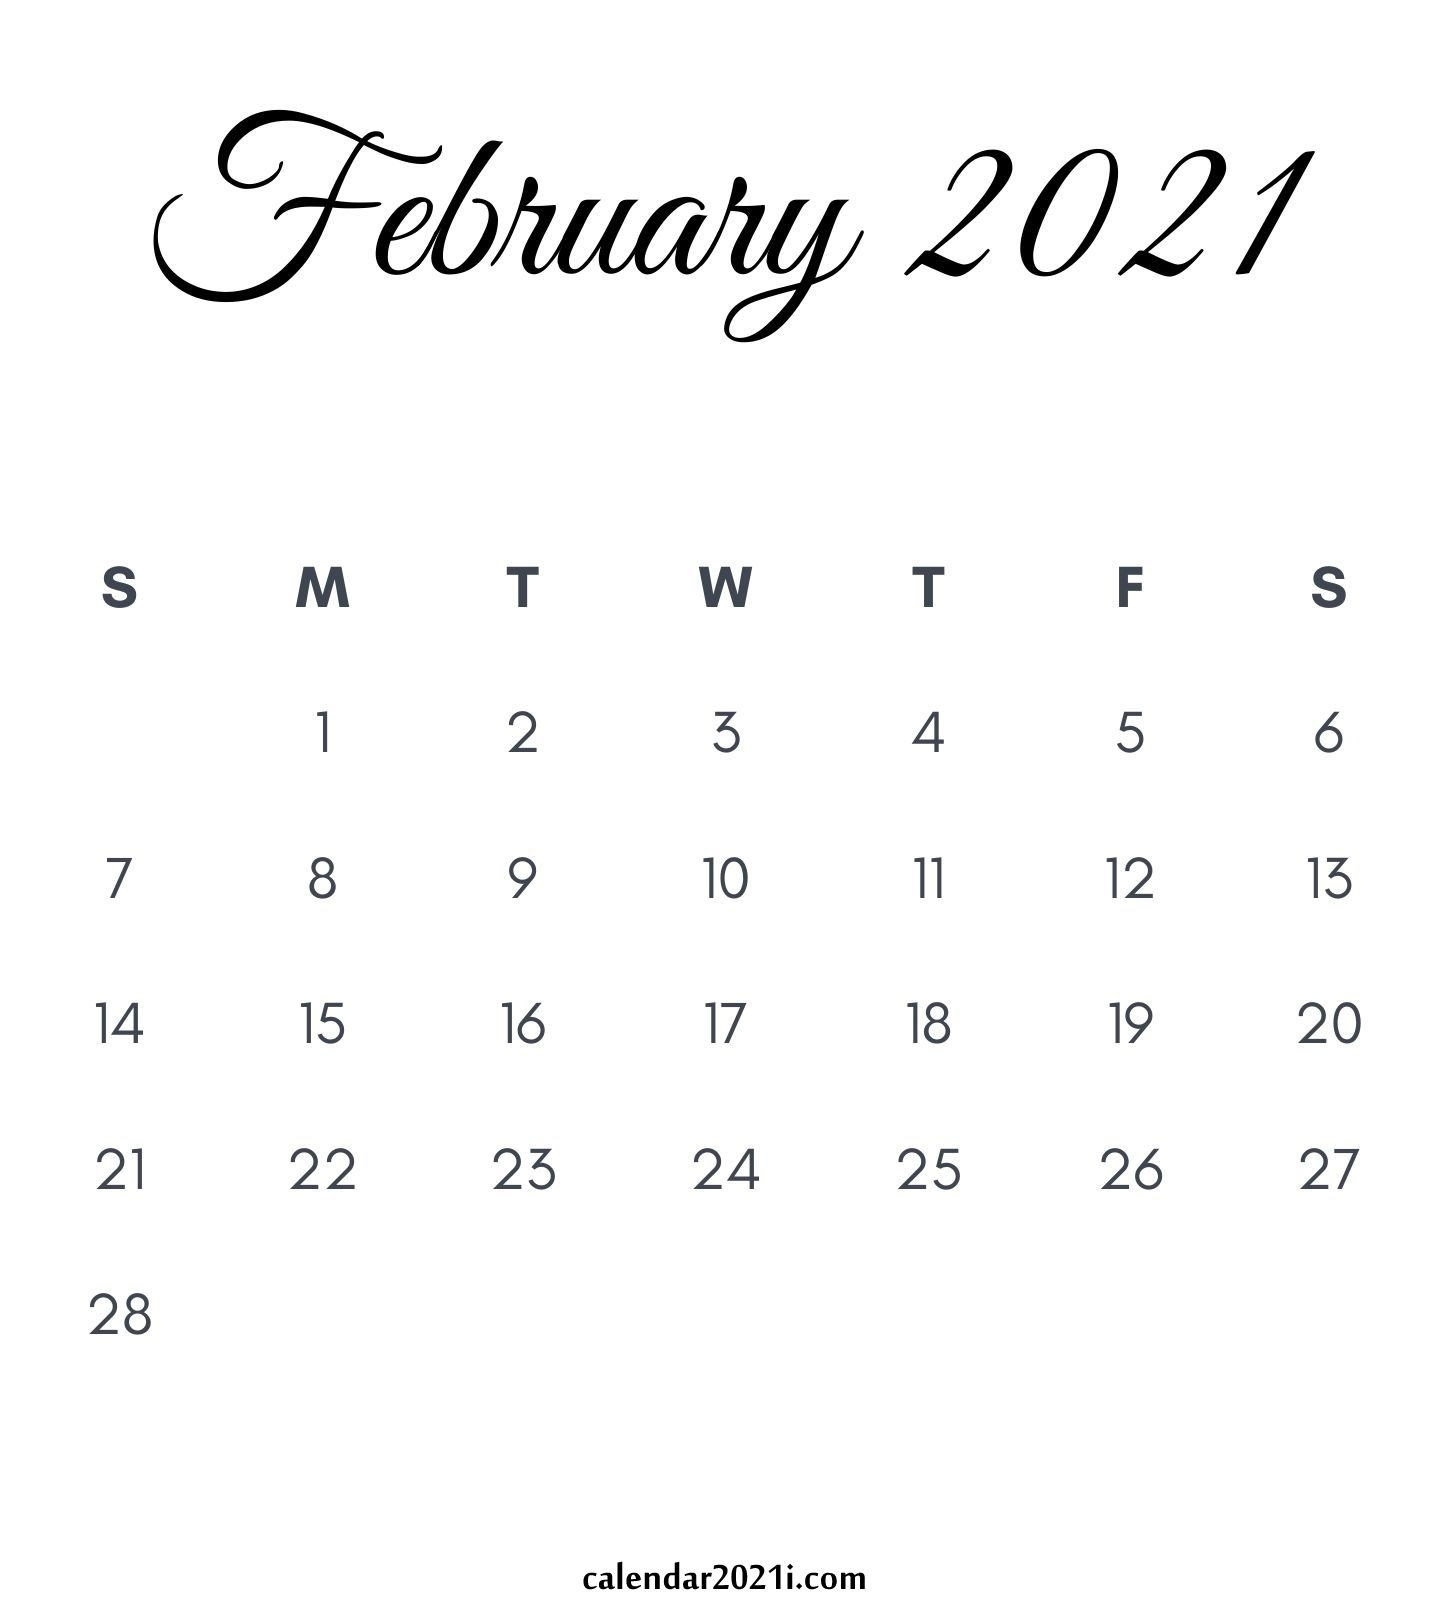 2021 Calendar Monthly Printable | Calendar 2021